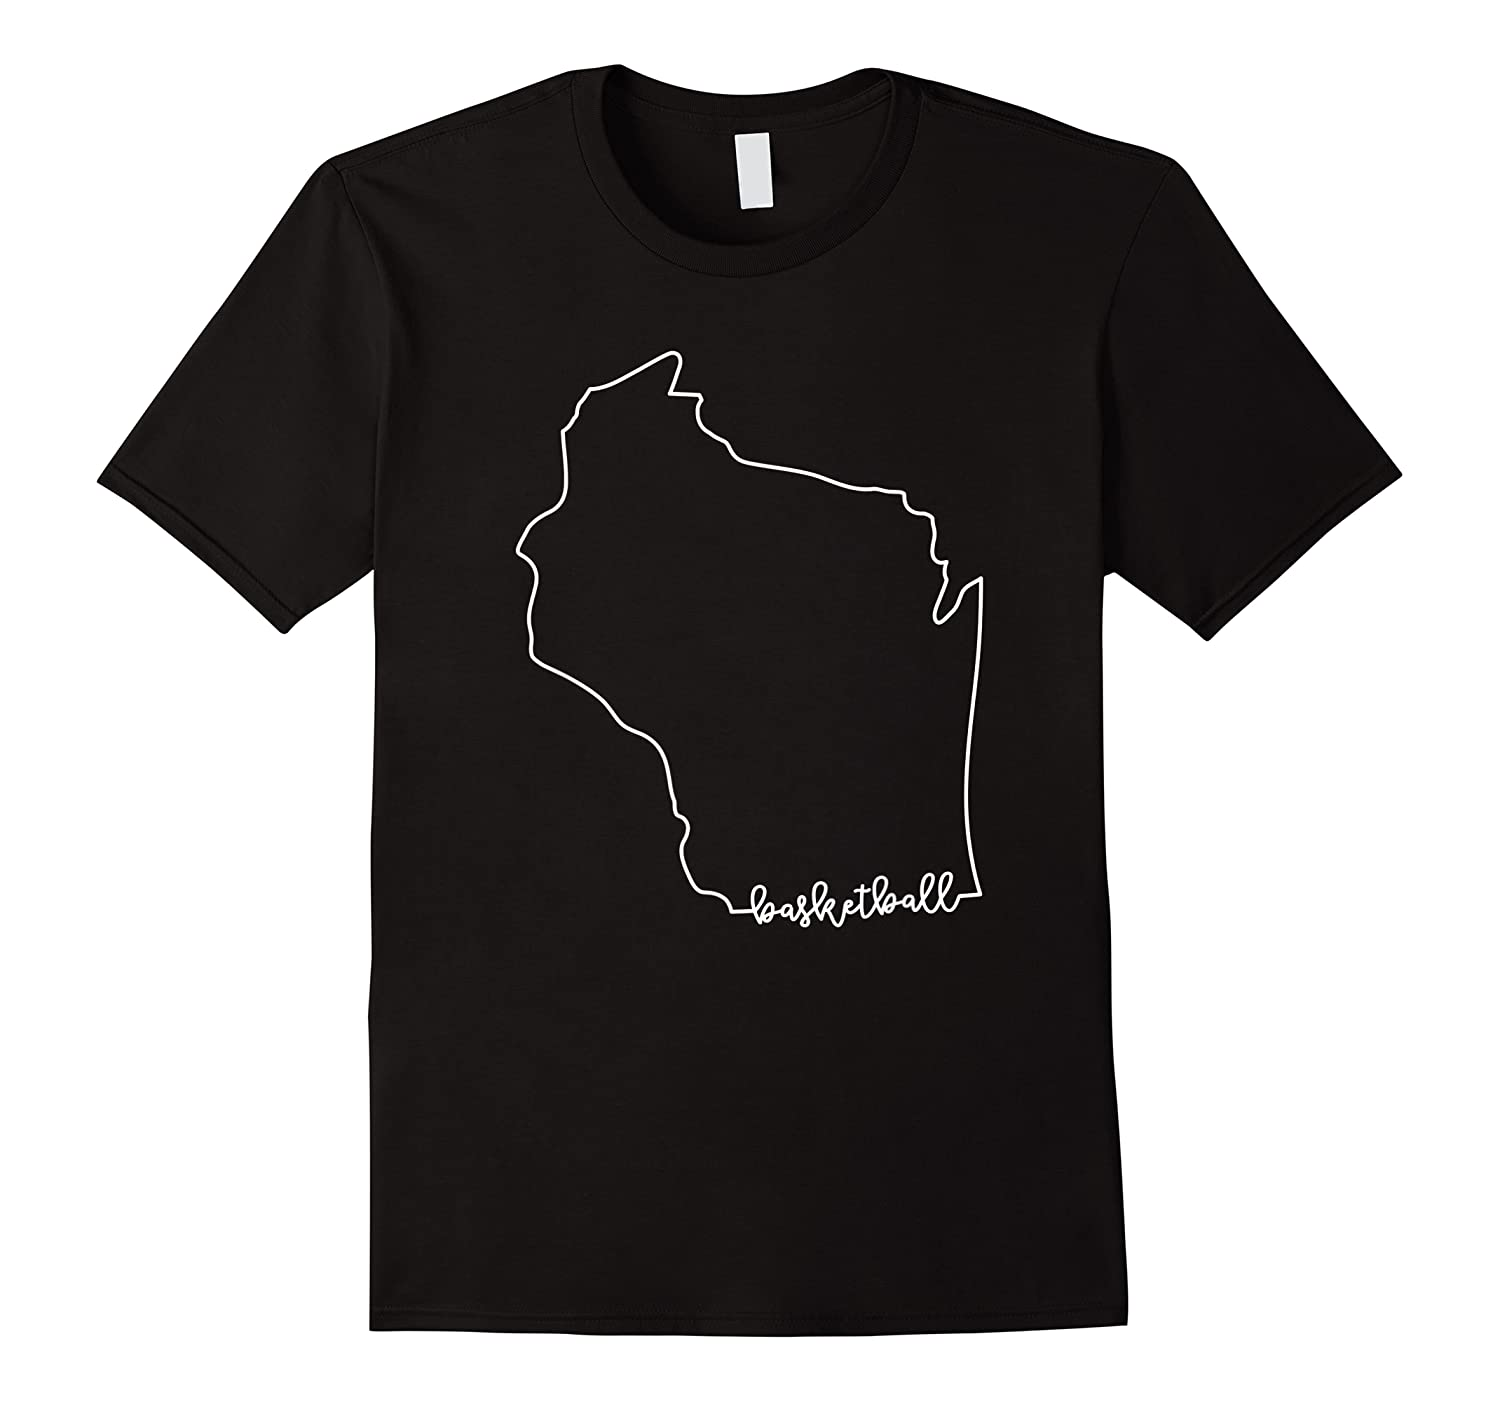 State Of Wisconsin Outline With Basketball Script Acj299b T-shirt